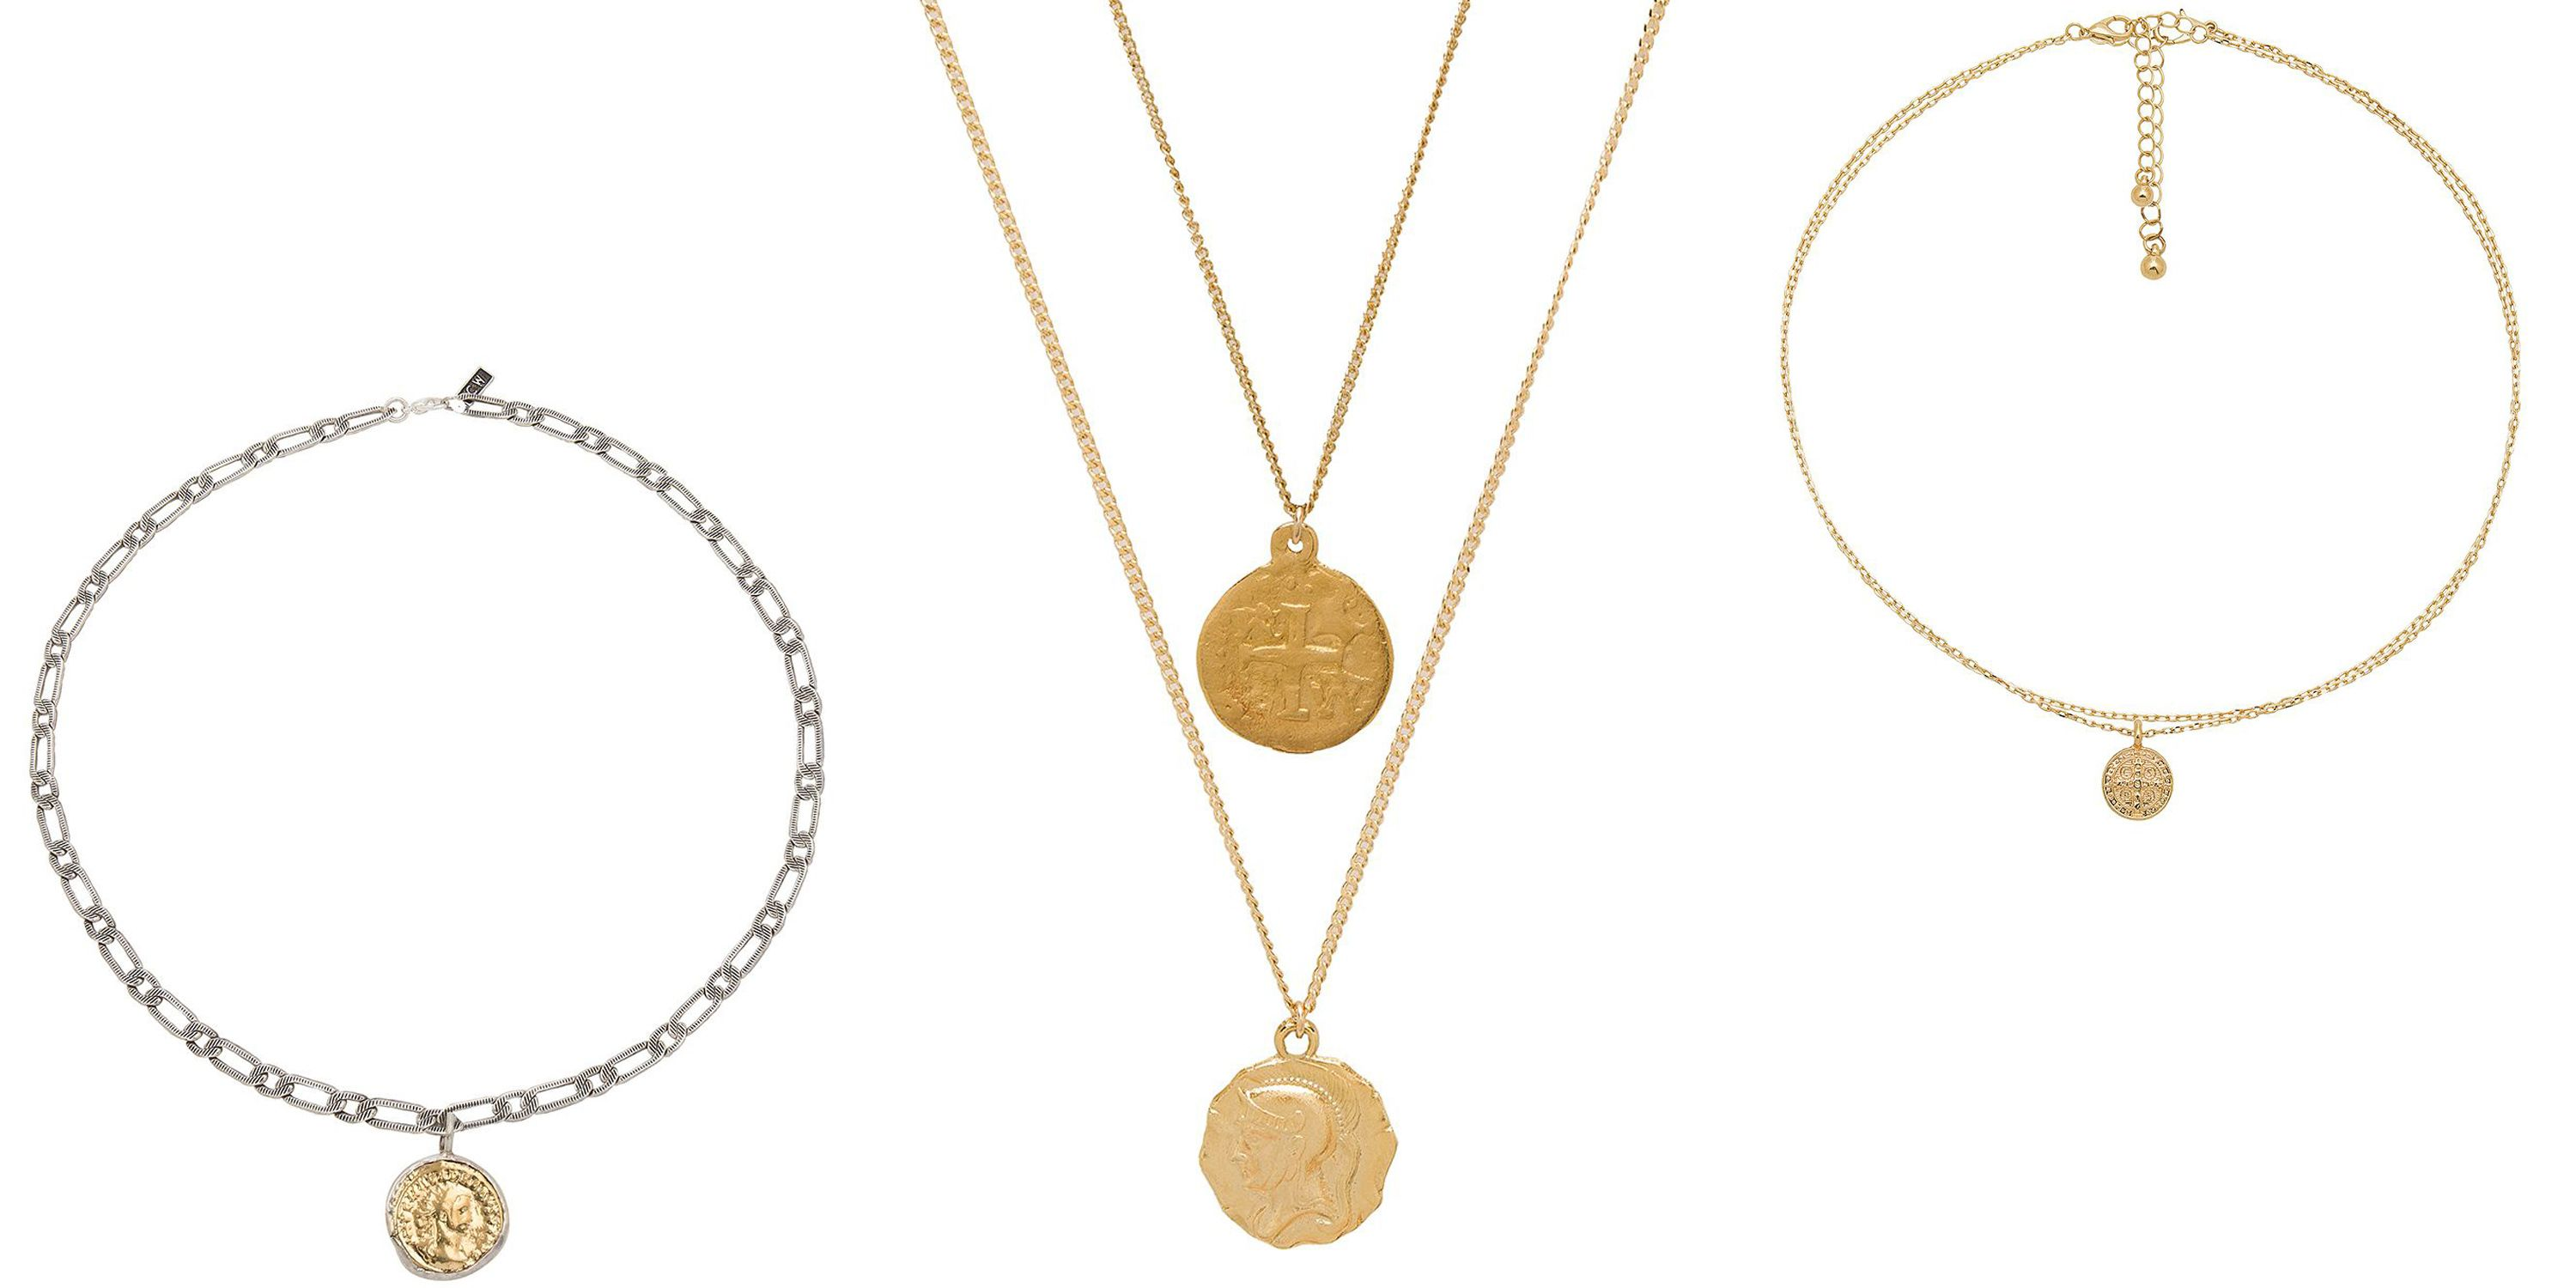 The Best Coin Necklaces to Shop Now